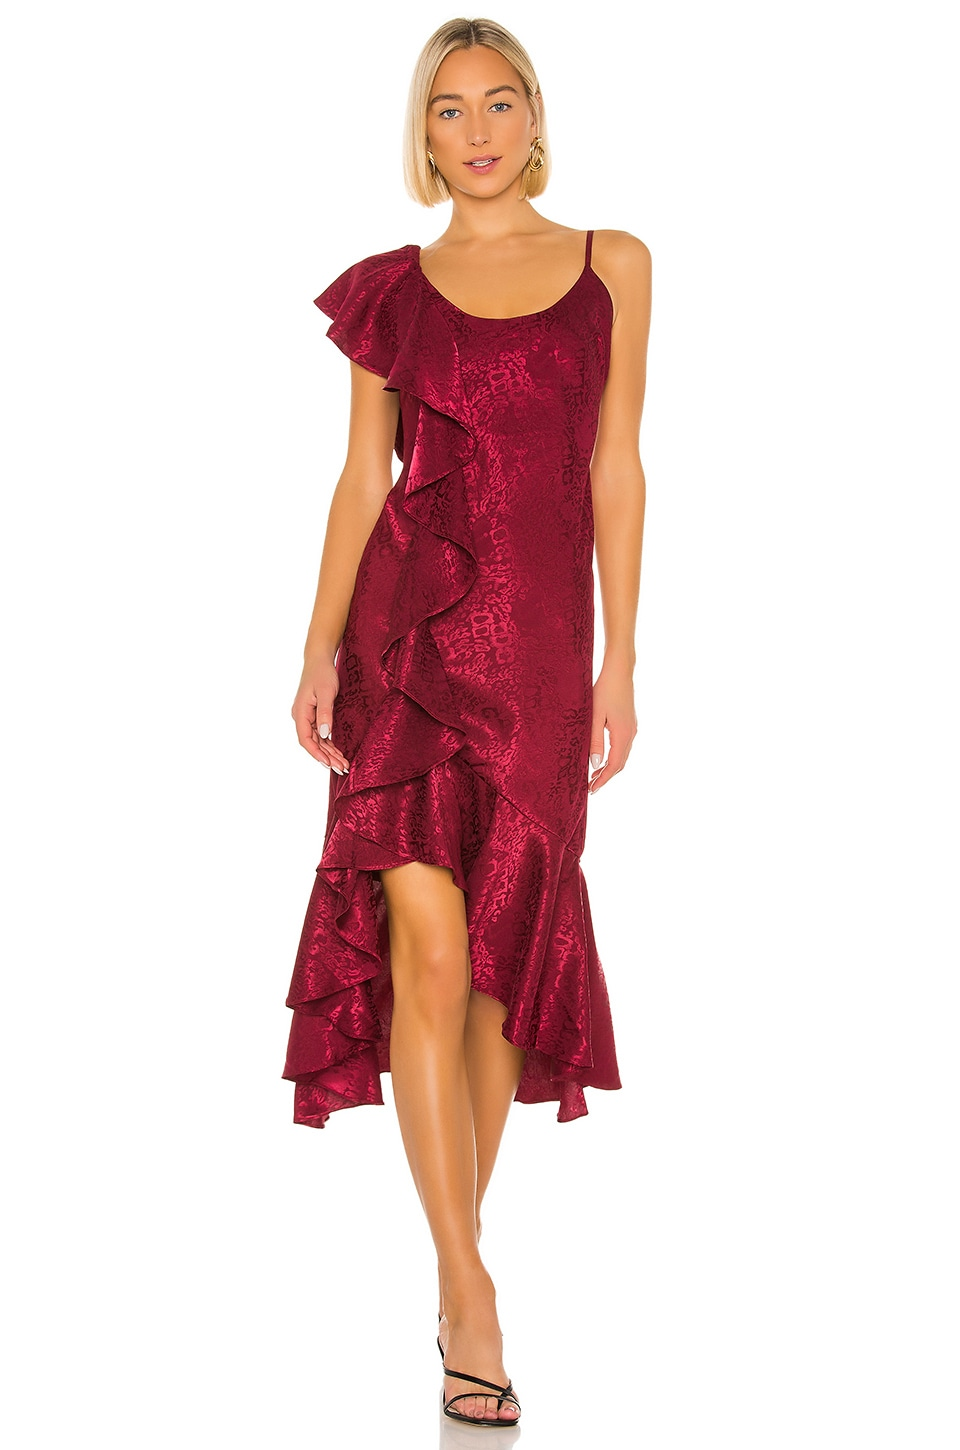 House of Harlow 1960 x REVOLVE Georgeta Dress in Currant Red